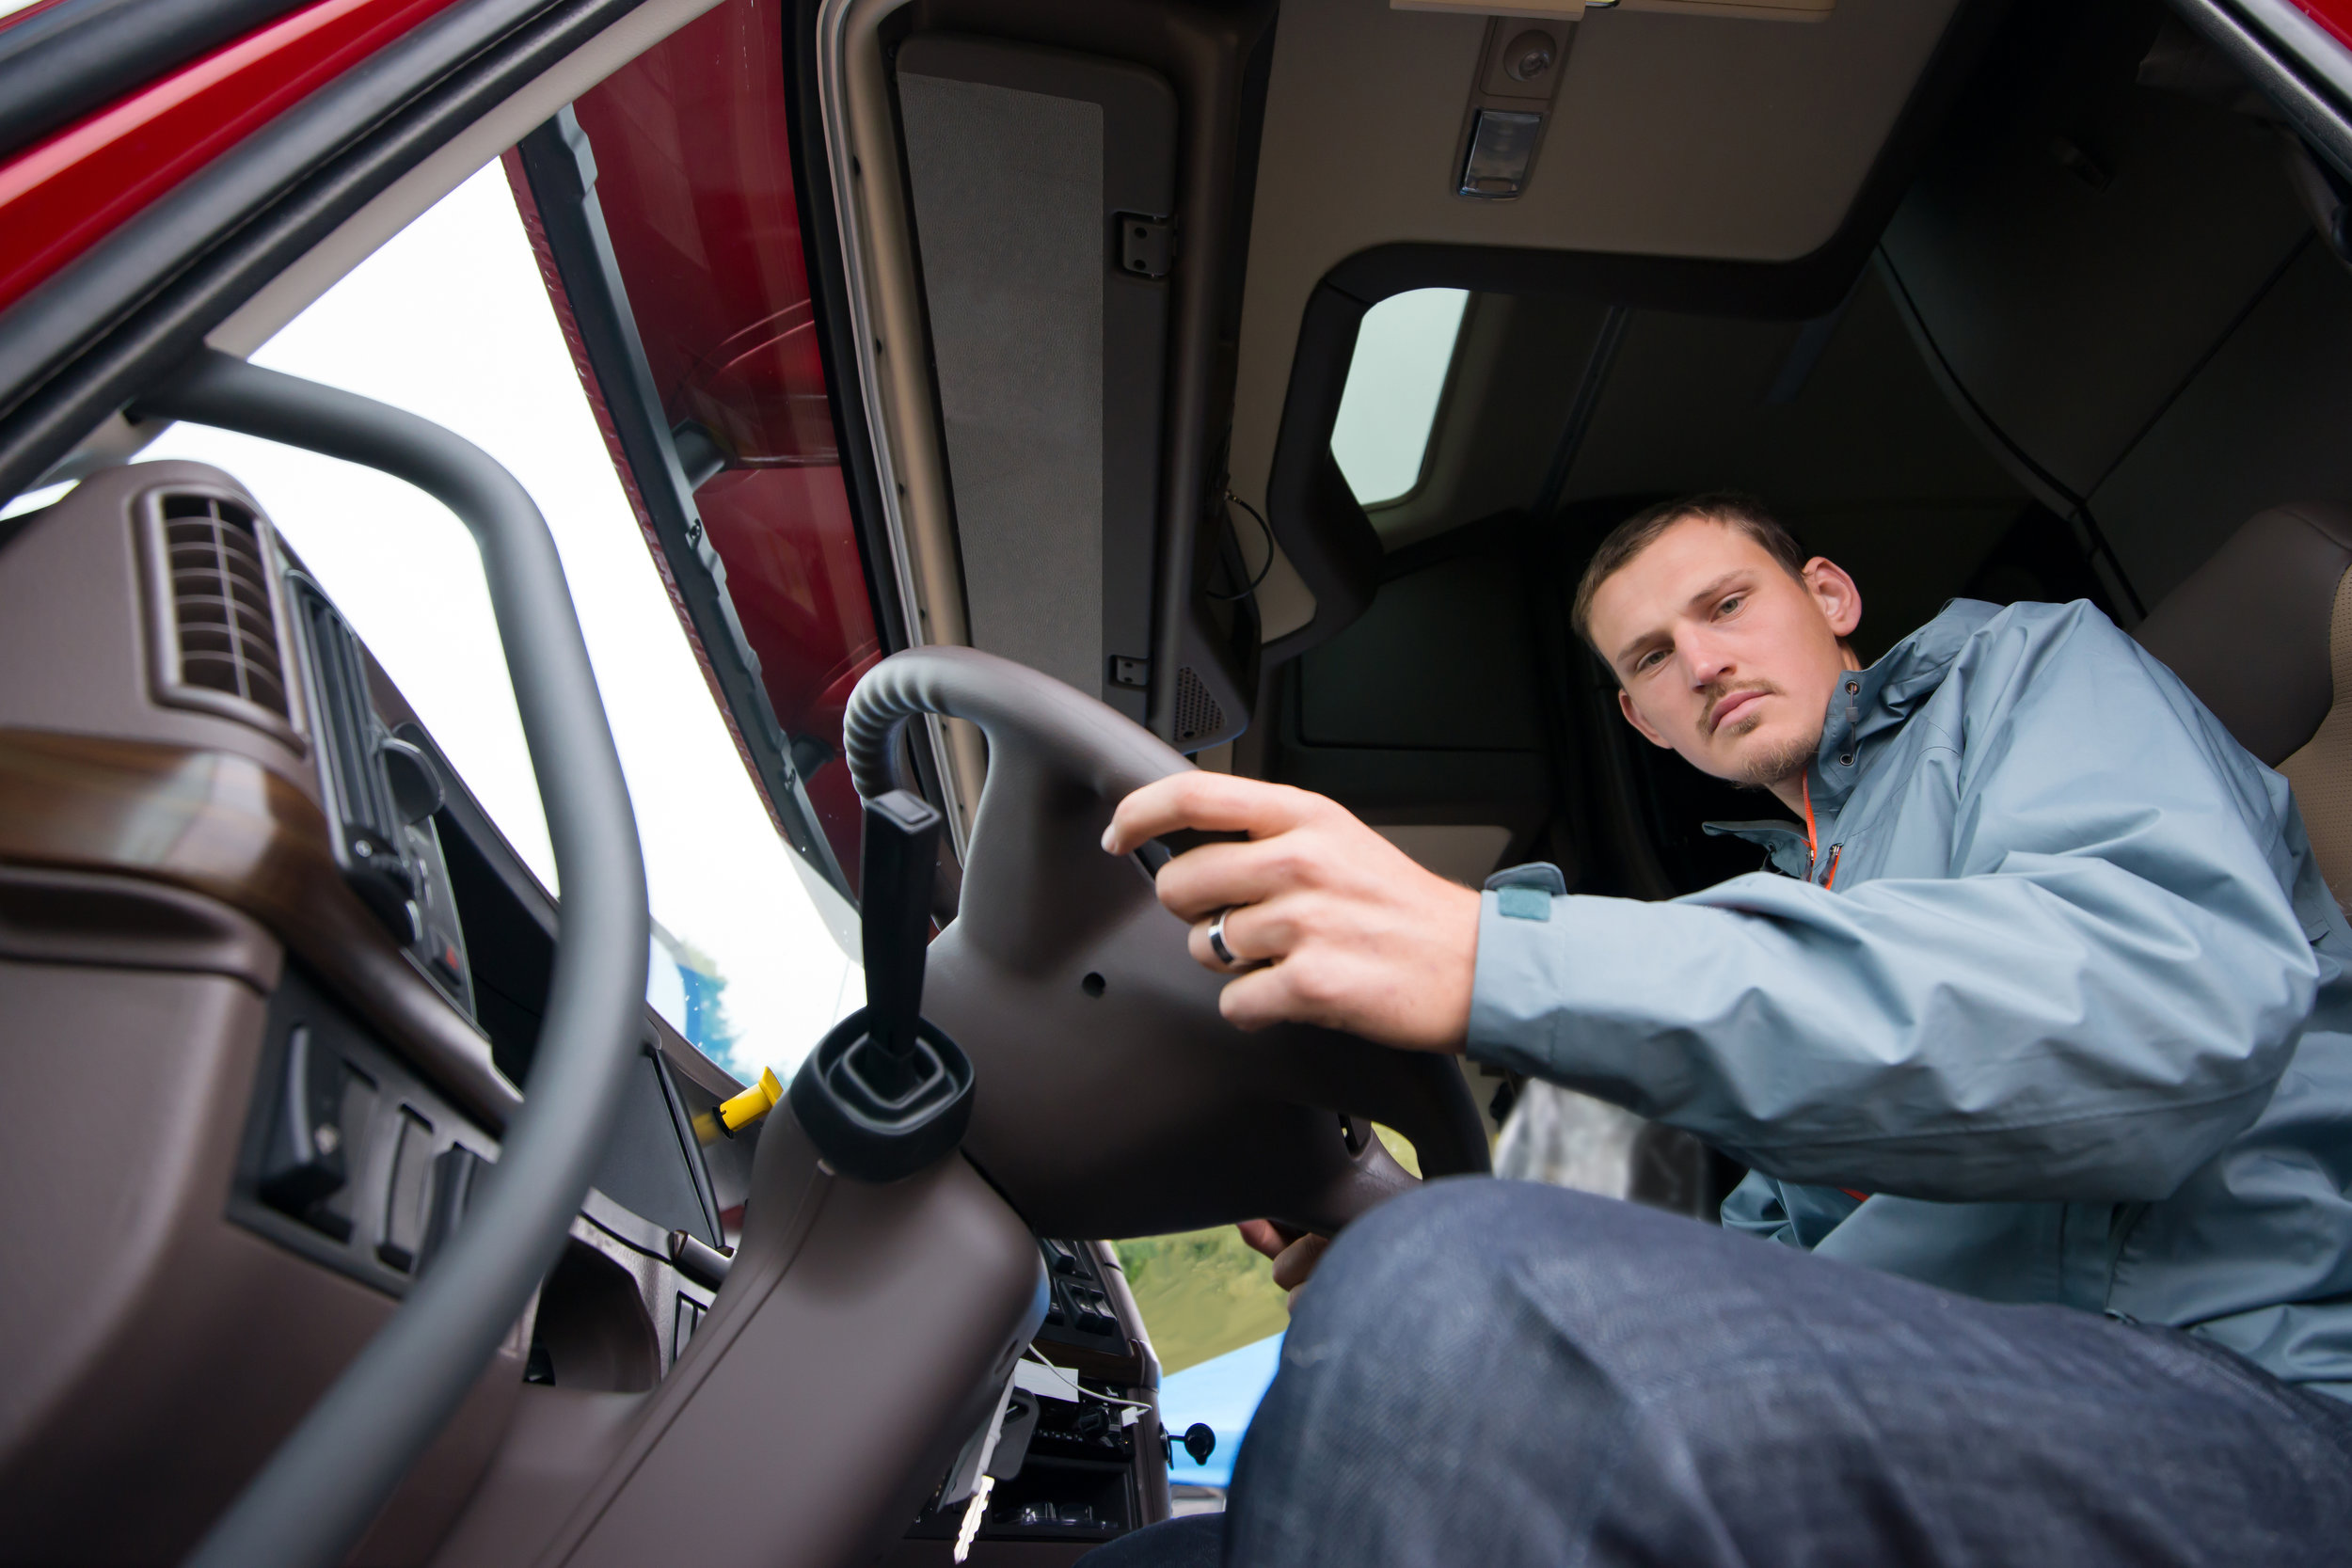 The FMCSA is seeking public input on a potential pilot program that would allow CDL holders under the age of 21 to operate in interstate operations.